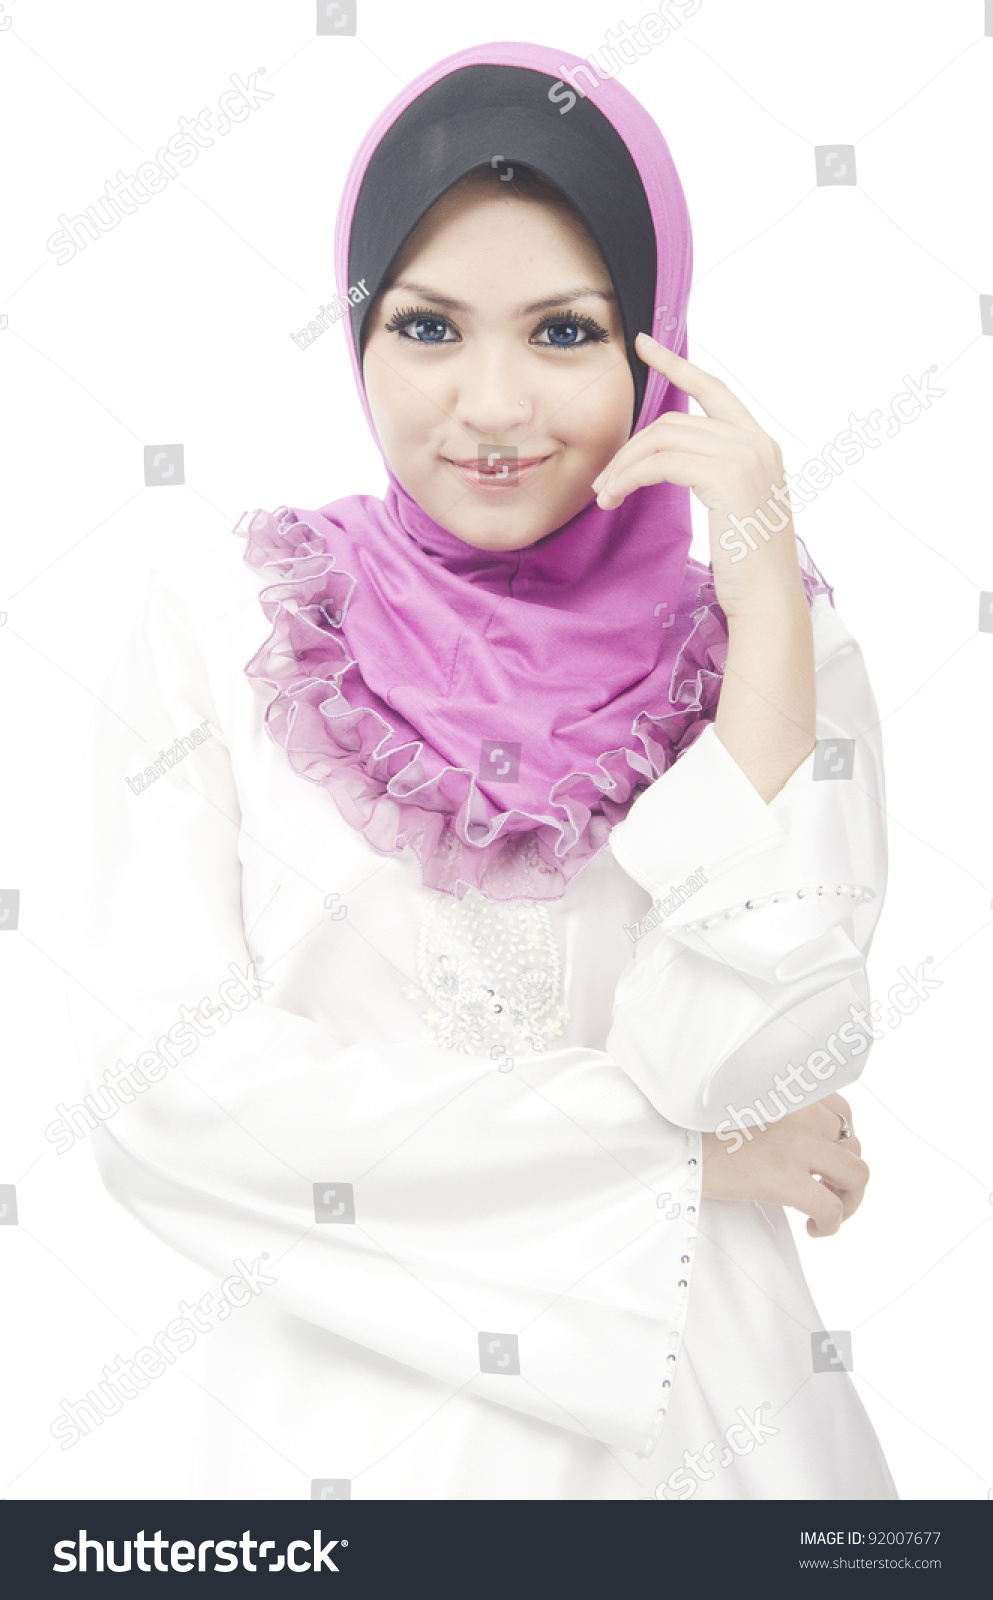 de young muslim Meet muslim women and find your true love at muslimacom sign up today and browse profiles of muslim women for freelink value.